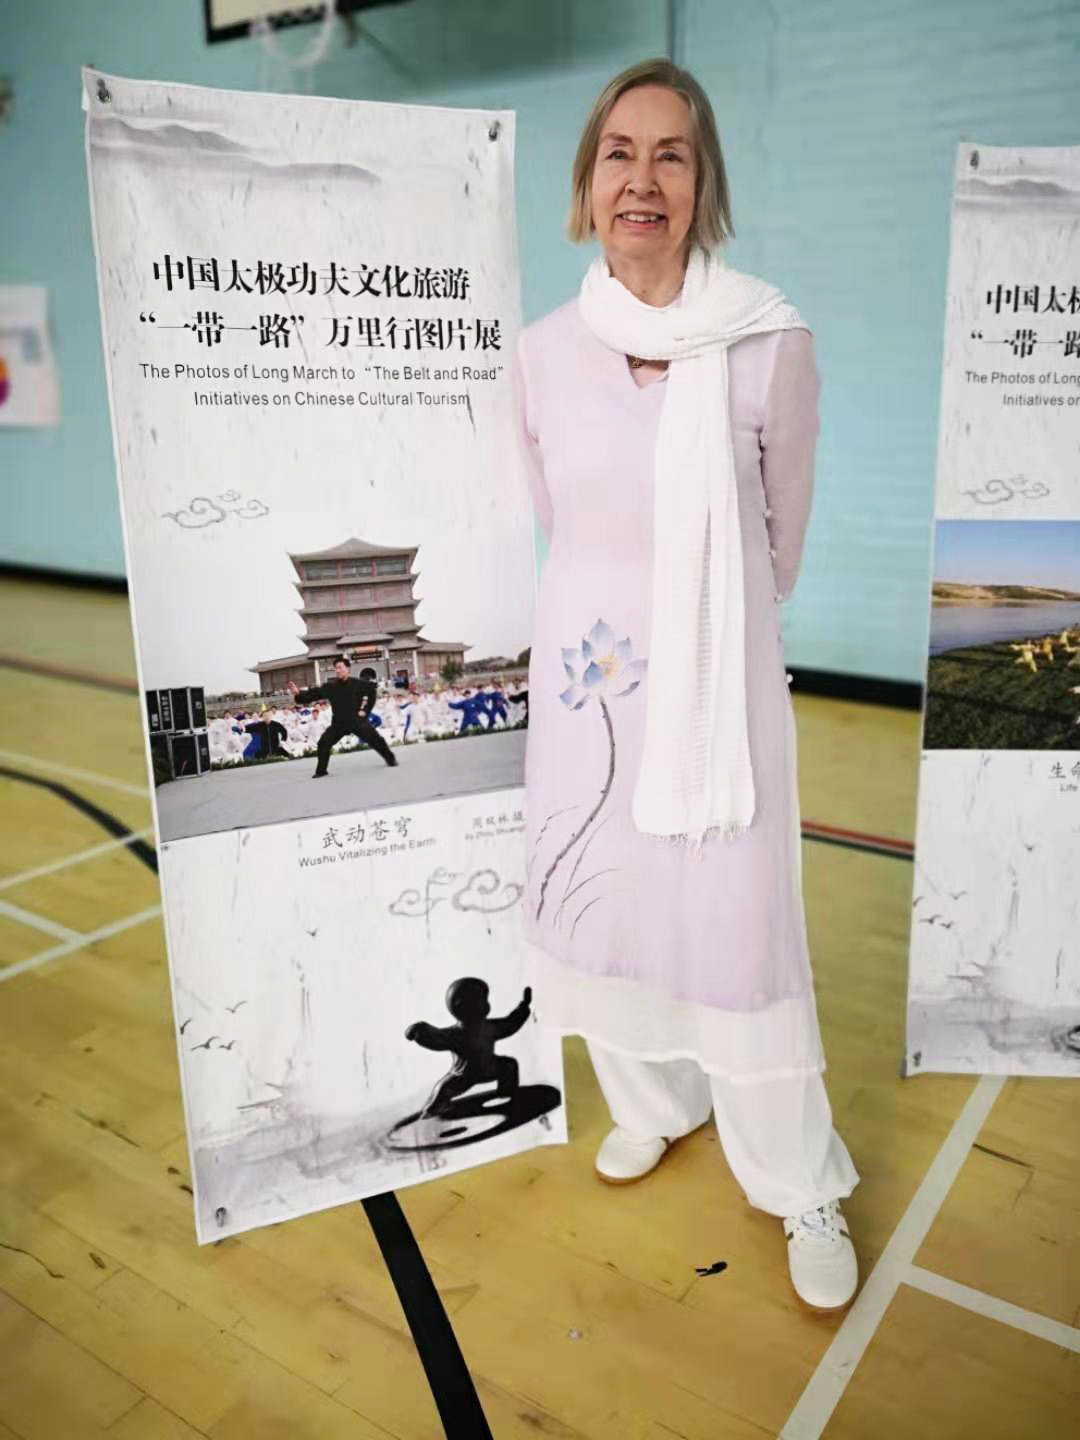 Belt and Road Poster with Tai JI Circle Chris Jones